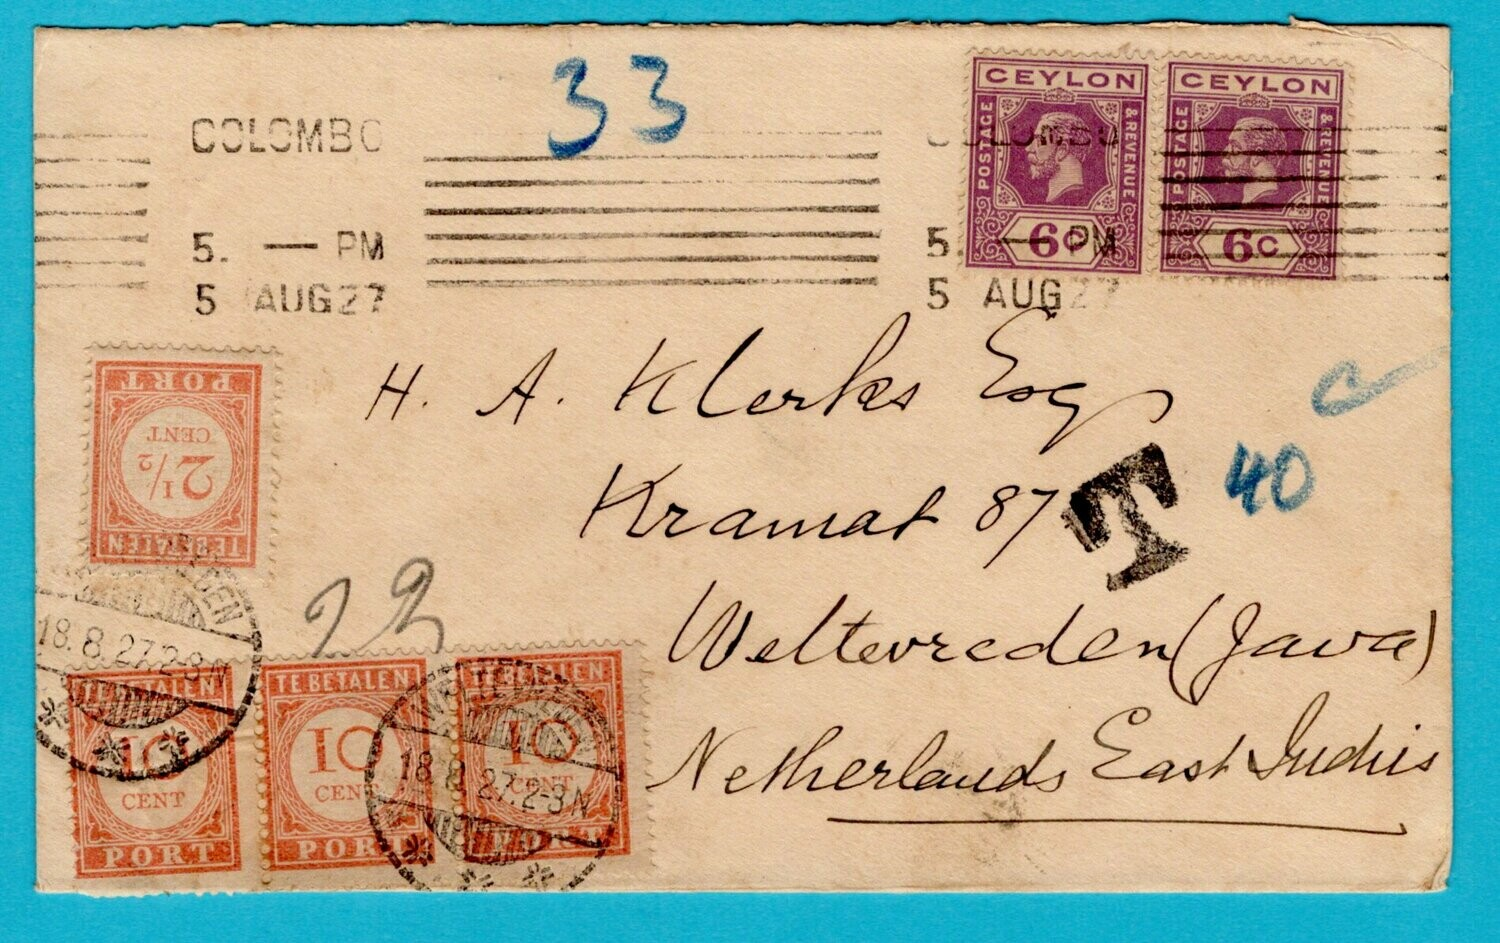 NETHERLANDS EAST INDIES postage due cover 1927 Ceylon